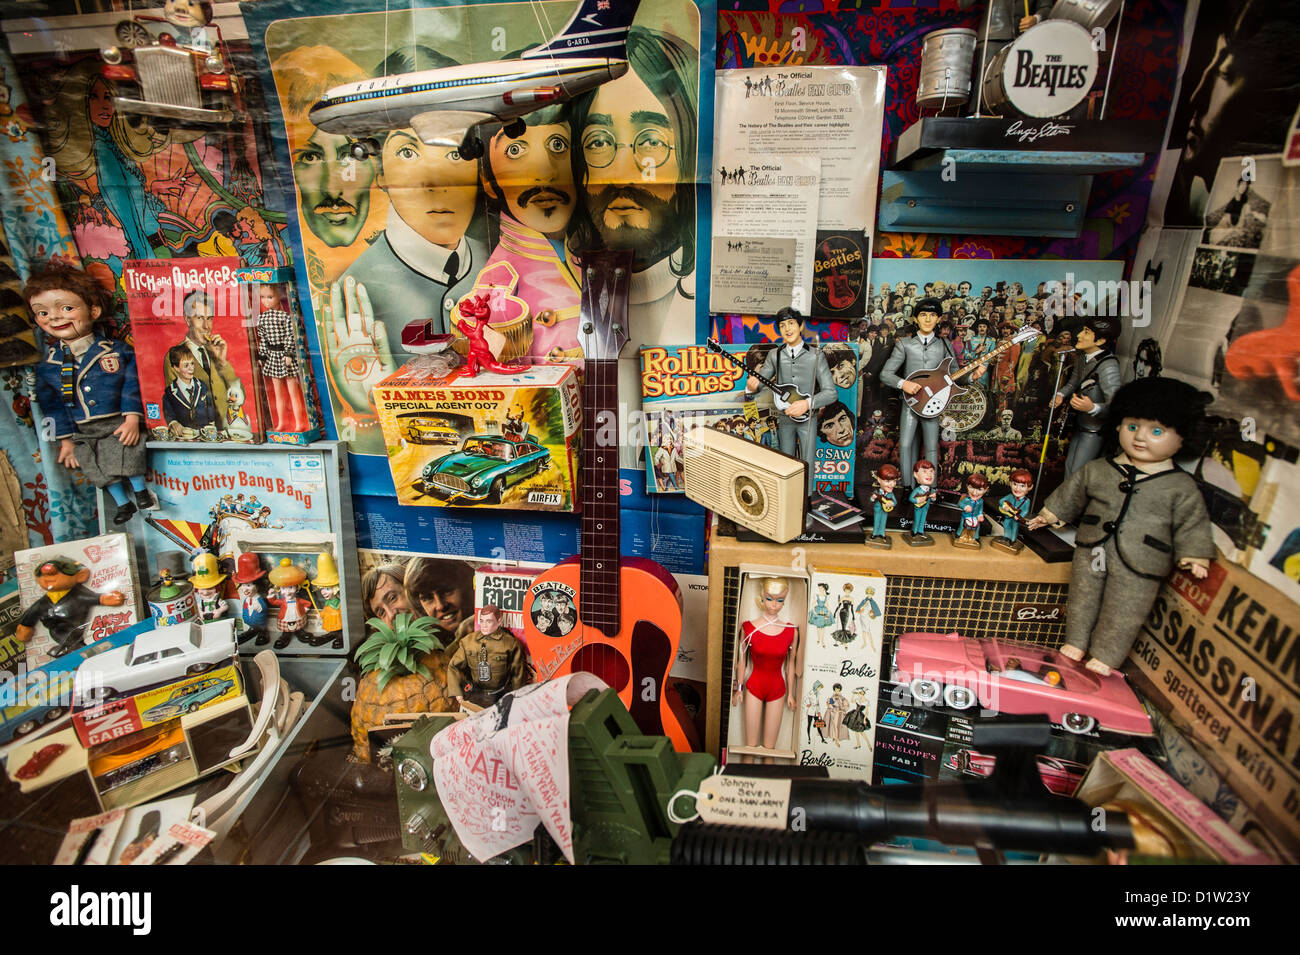 cda4b4f3cf A collection of toys and other memorabilia - including items showing the  Beatles, Thunderbirds and other iconic figures - from the 1960's at the  West Wales ...